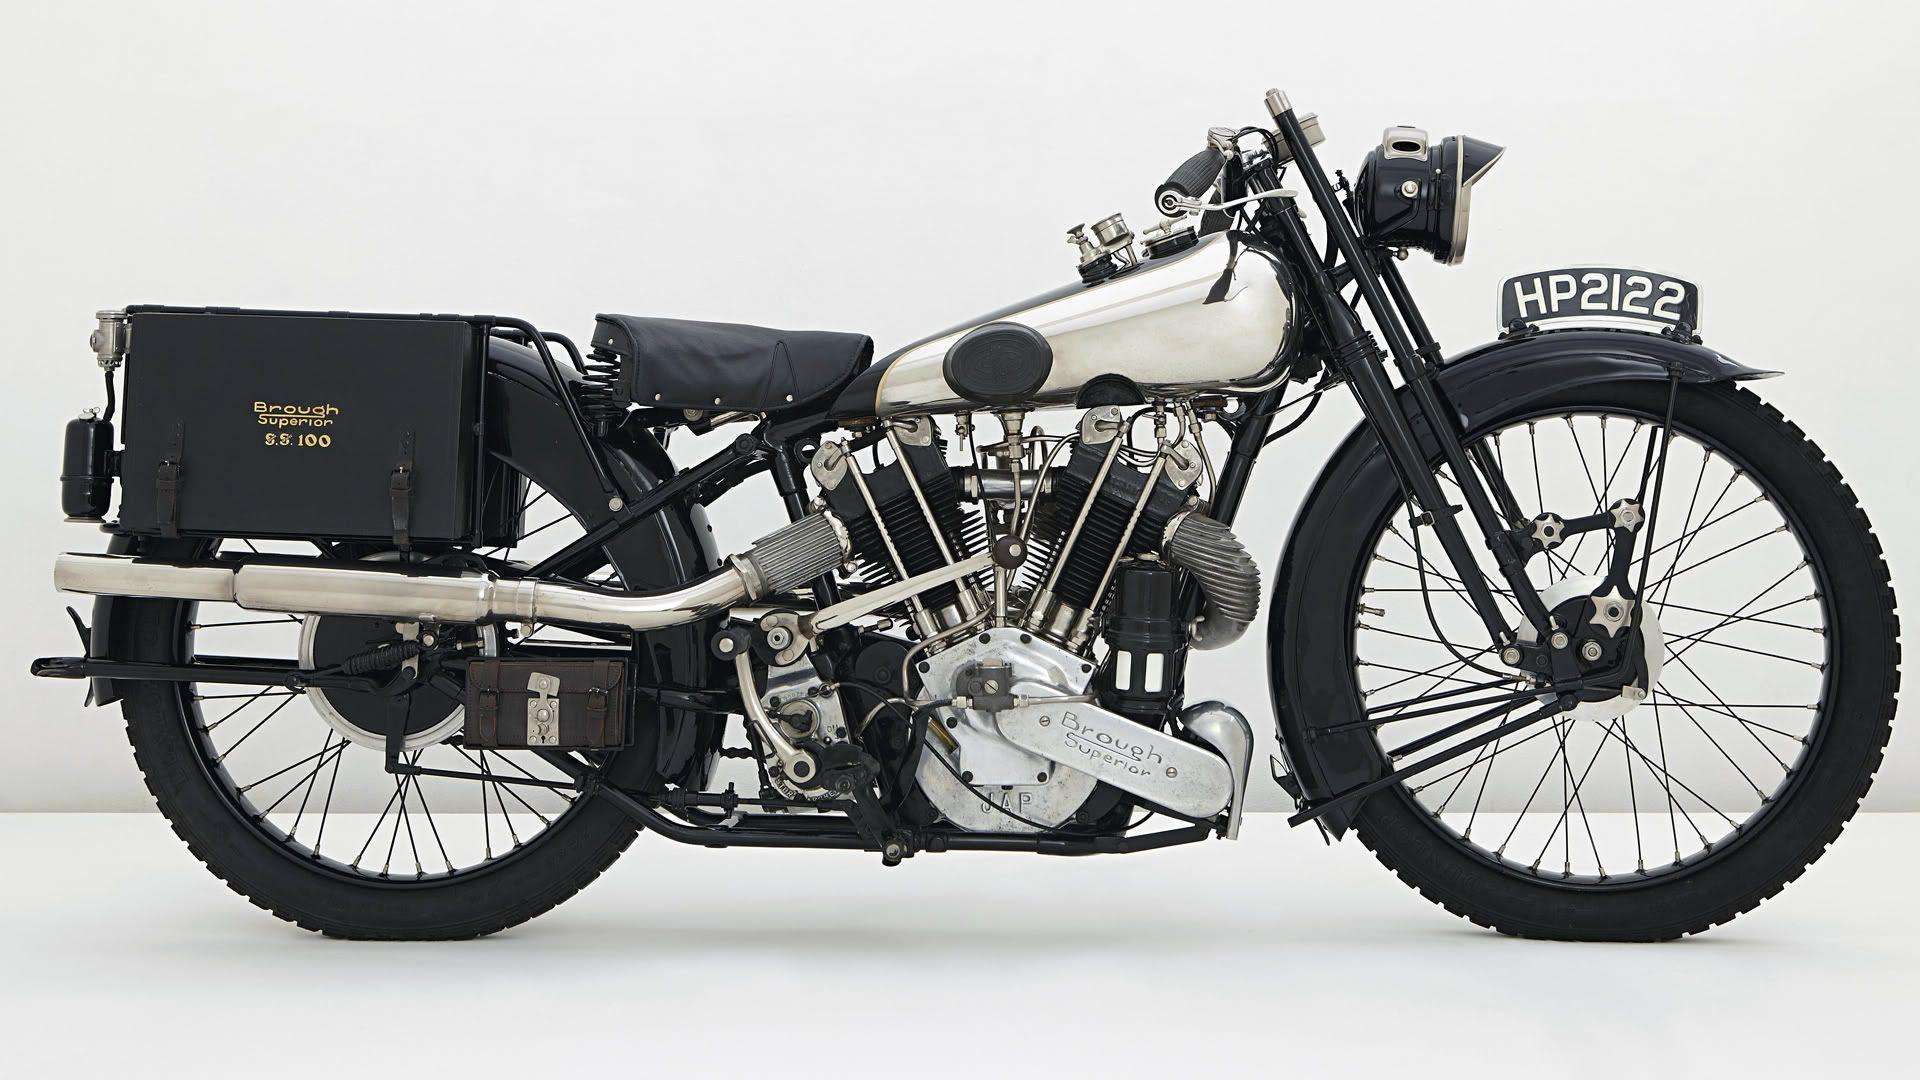 Classic Motorcycle Wallpaper, Image & Pictures